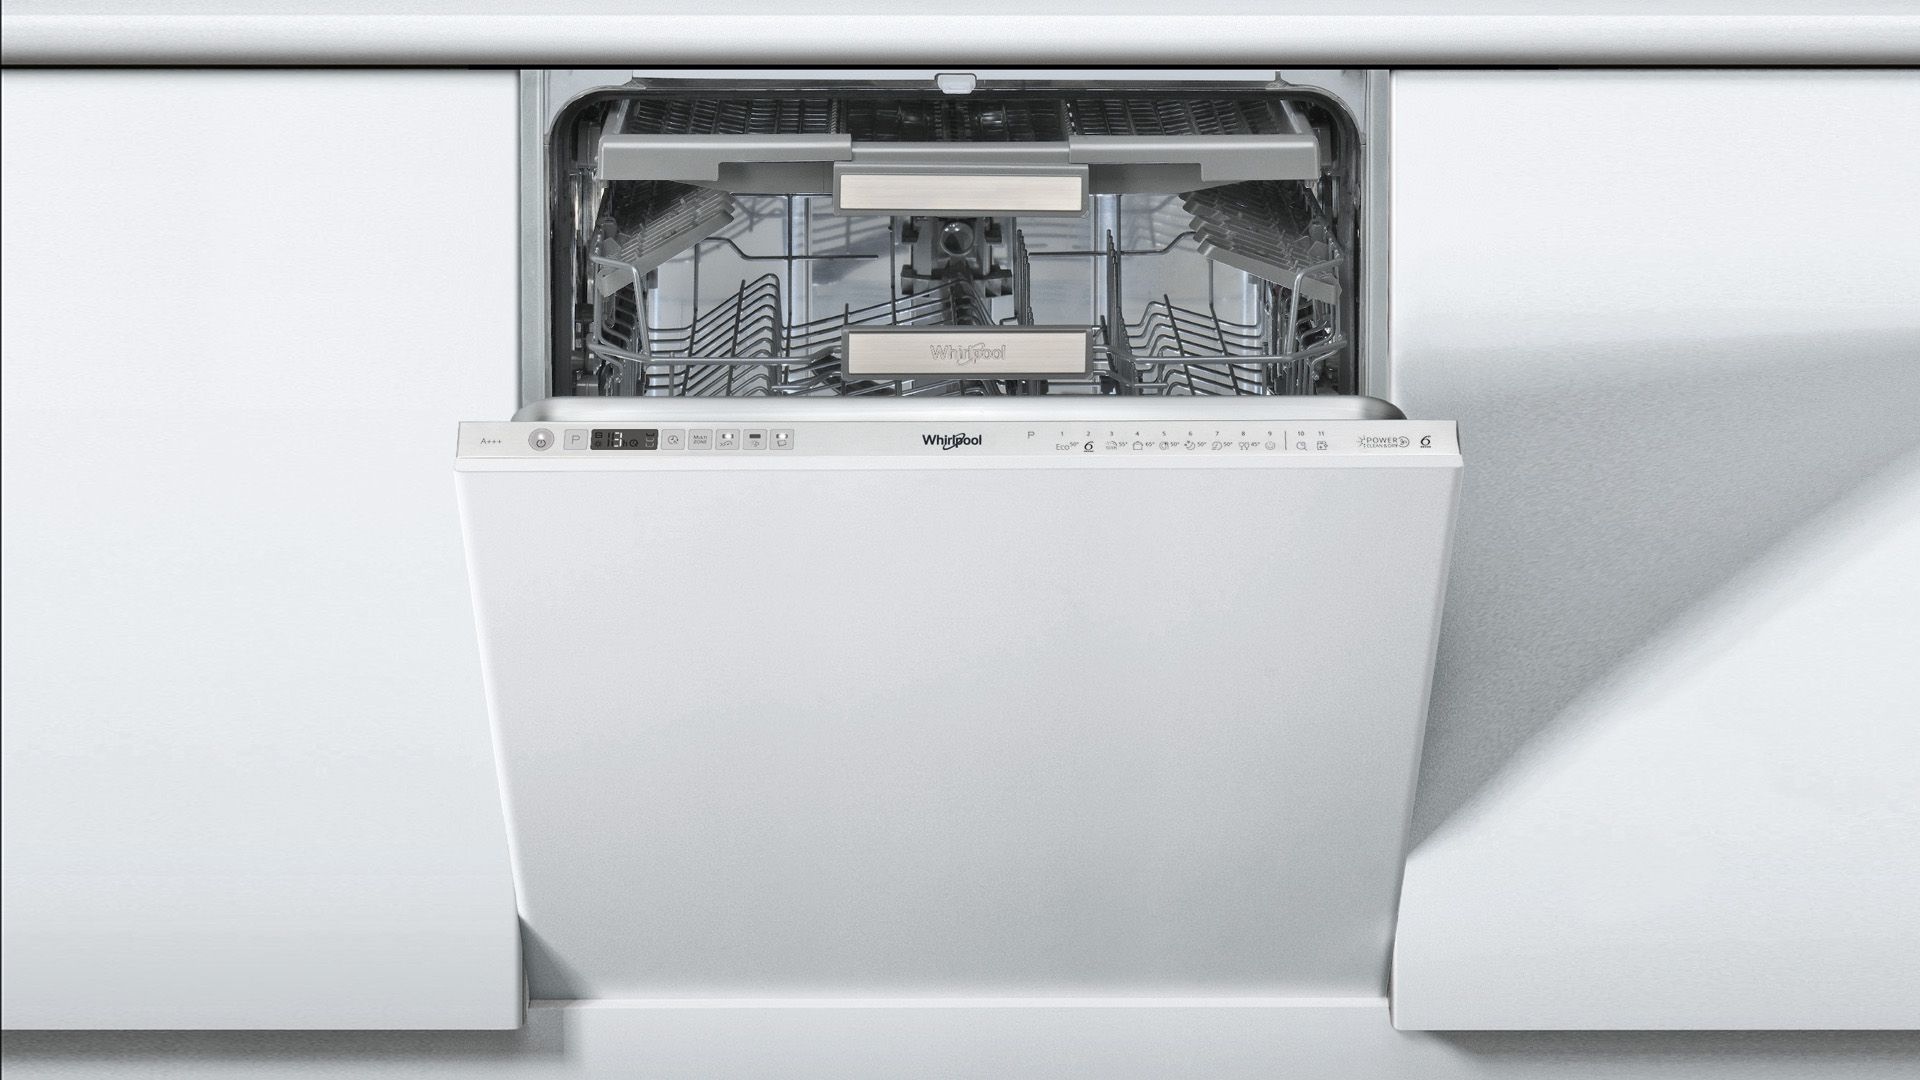 Whirlpool Wio 3o33 Del Built In Dishwasher Integrated